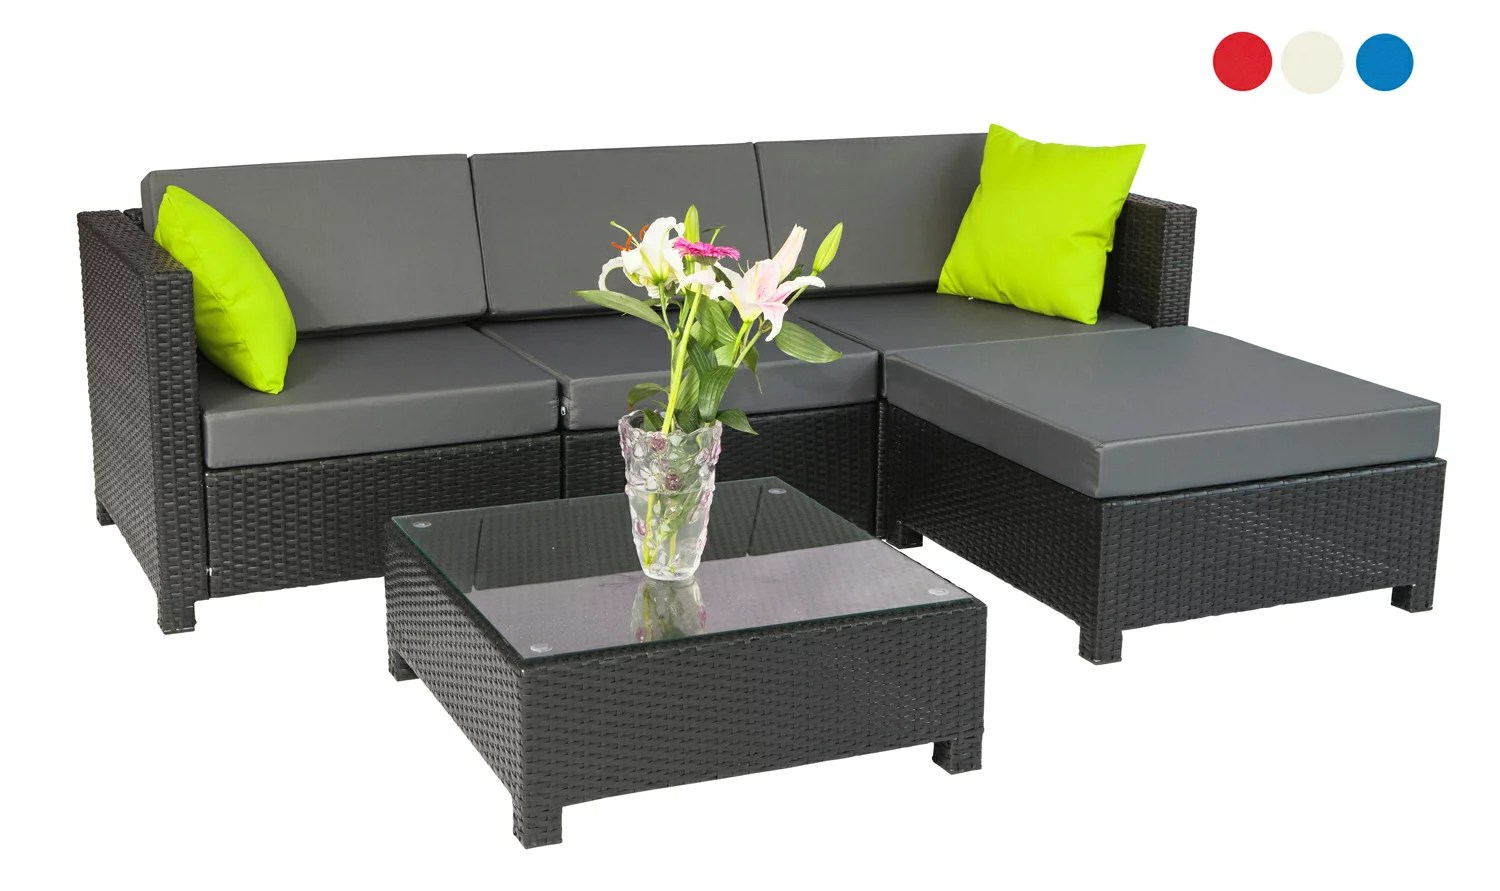 Outdoor Couch Mcombo 5pc Luxury Wicker Sectional Outdoor Sofa Aluminum Frame Furniture 2 Sets Covers